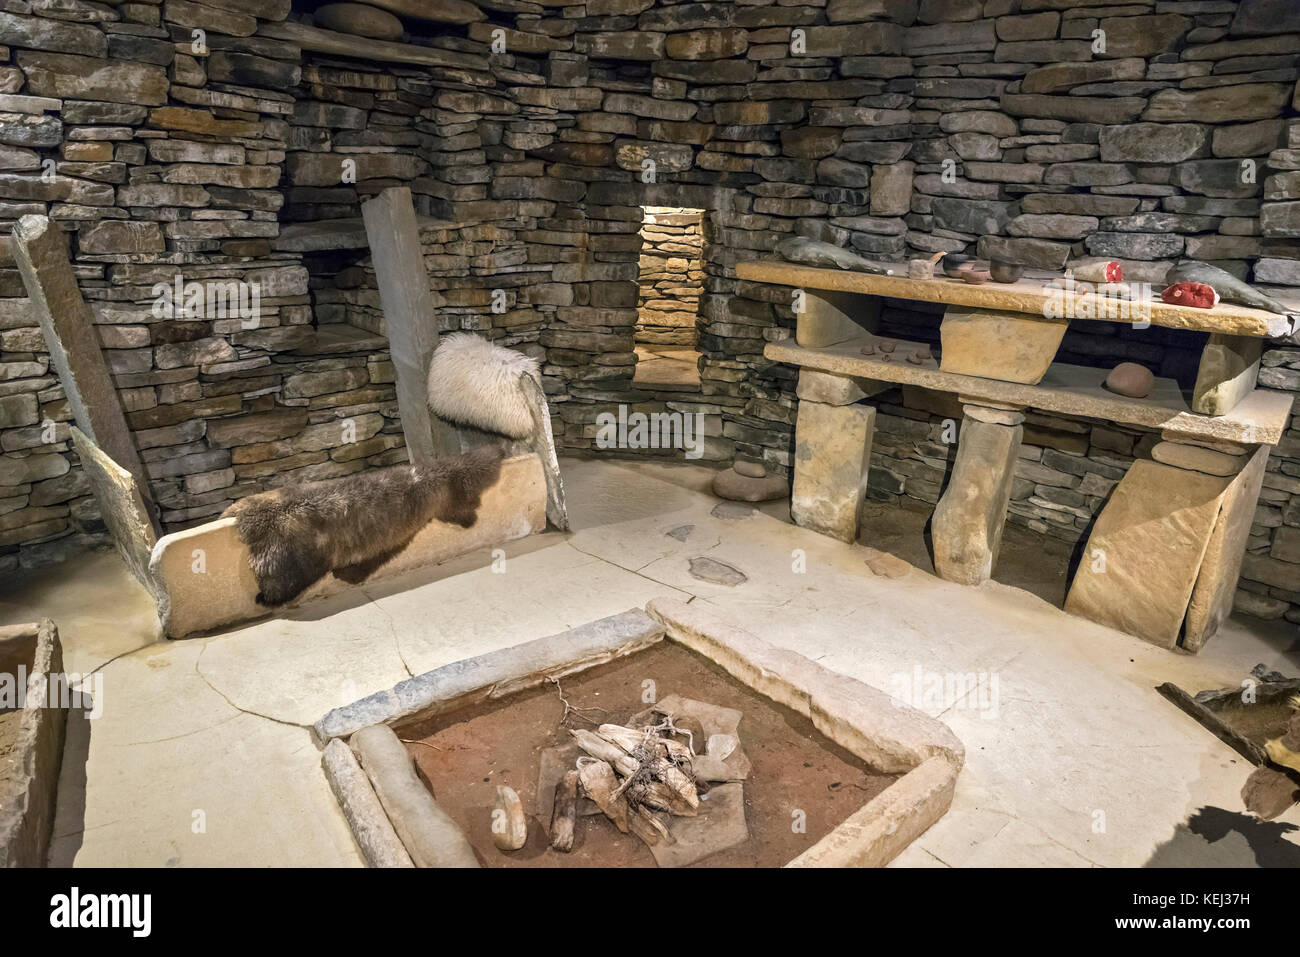 Replica of the interior of a stone house at the Neolithic settlement of Skara Brae, Mainland, Orkney, Scotland, Stock Photo